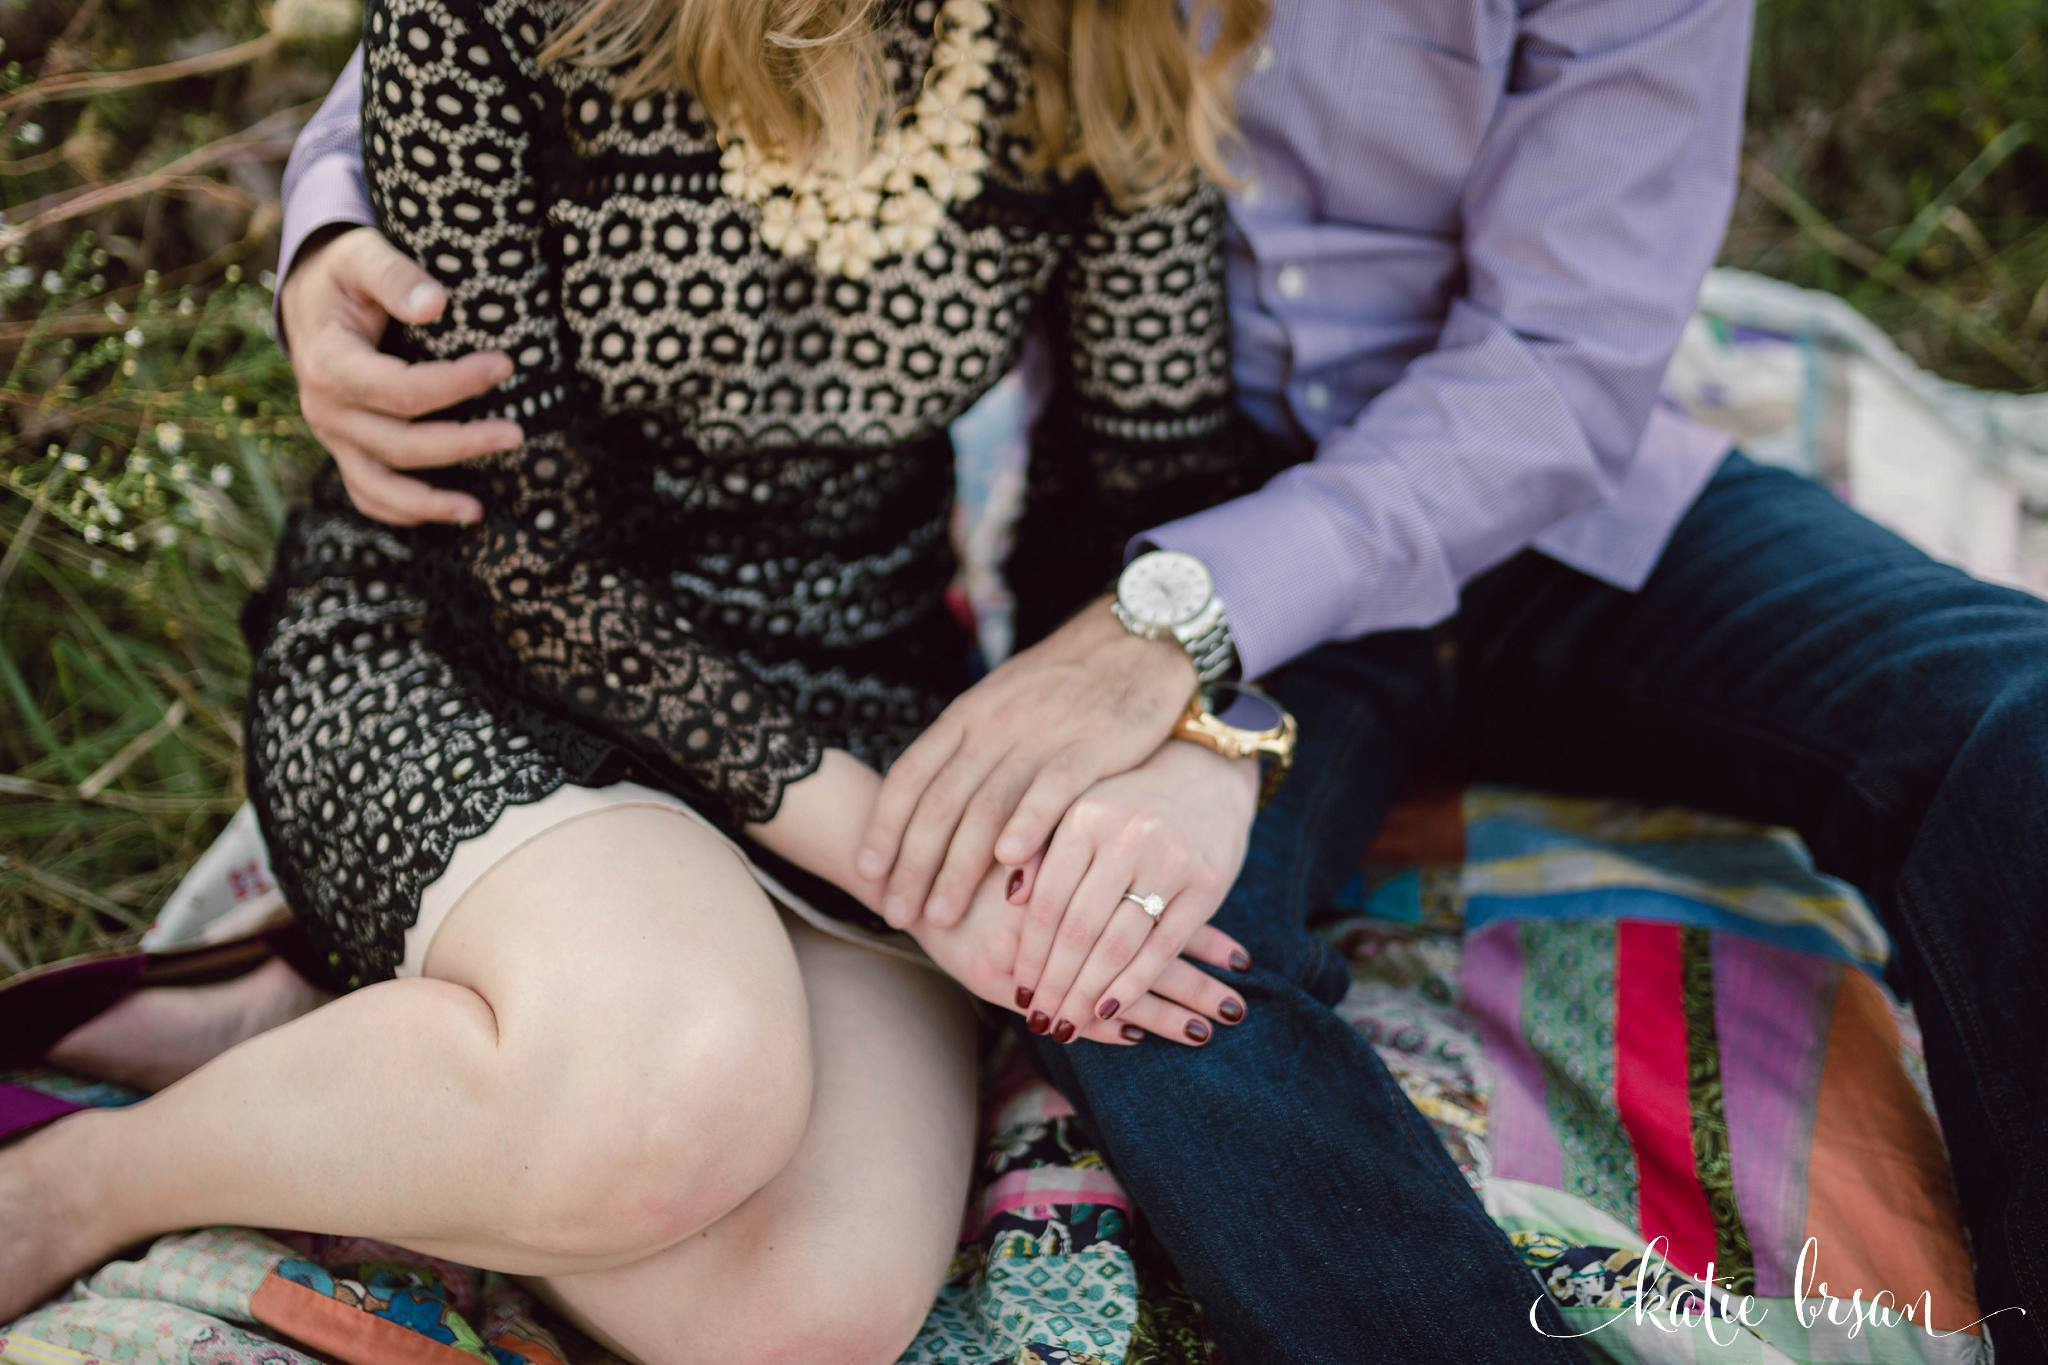 Mokena_EngagementSession_RuffledFeathers_Wedding_0956.jpg